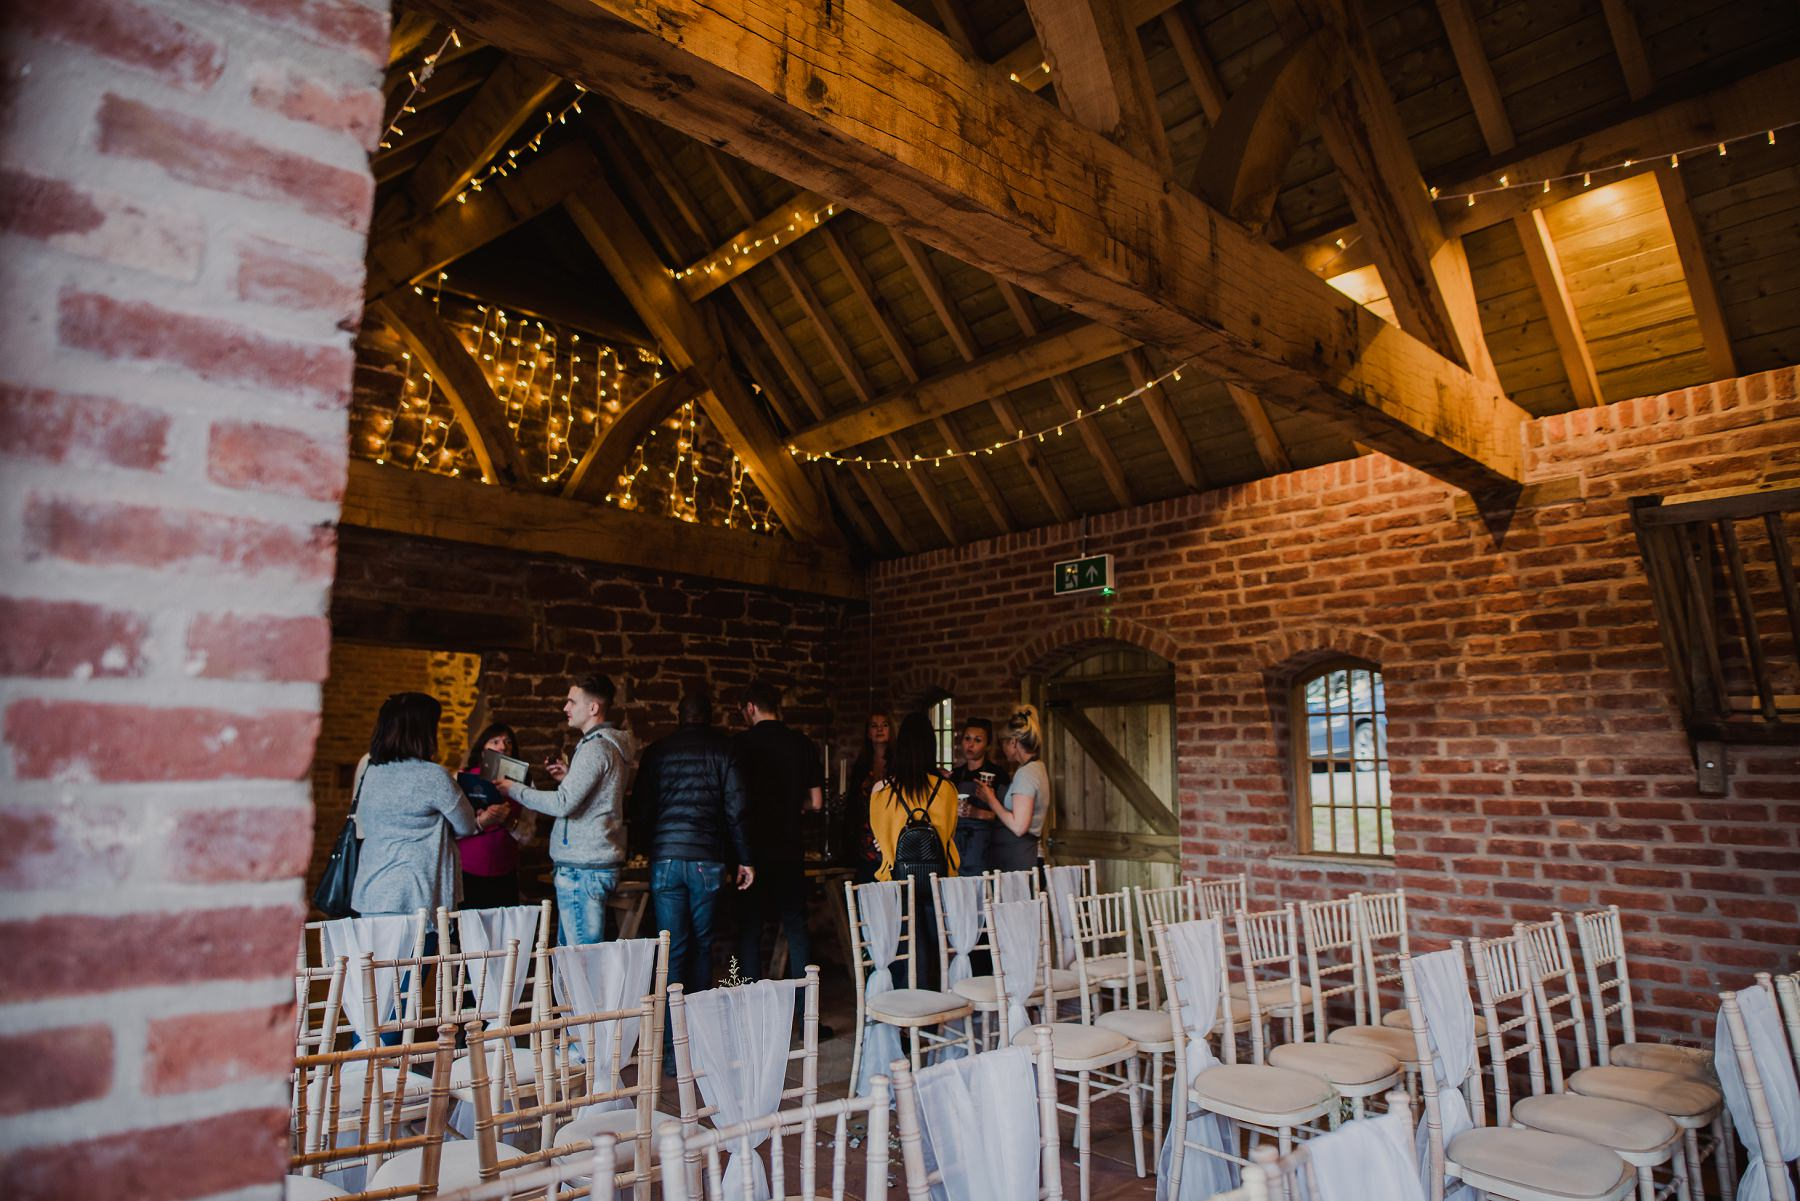 Bridal_Barn_Open_Evening_June2019 (88).jpg